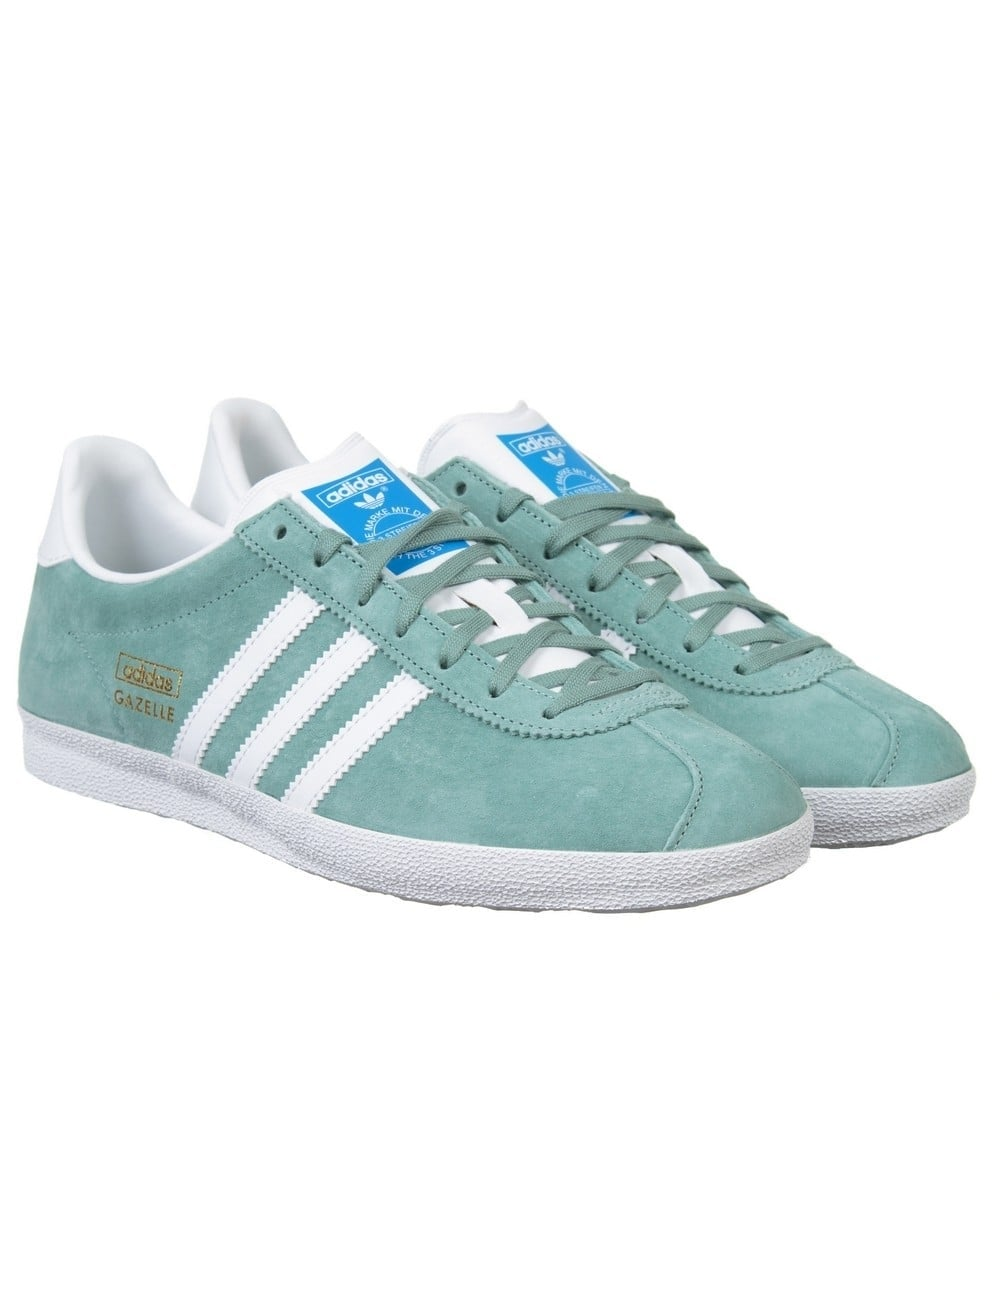 adidas gazelle og legend green